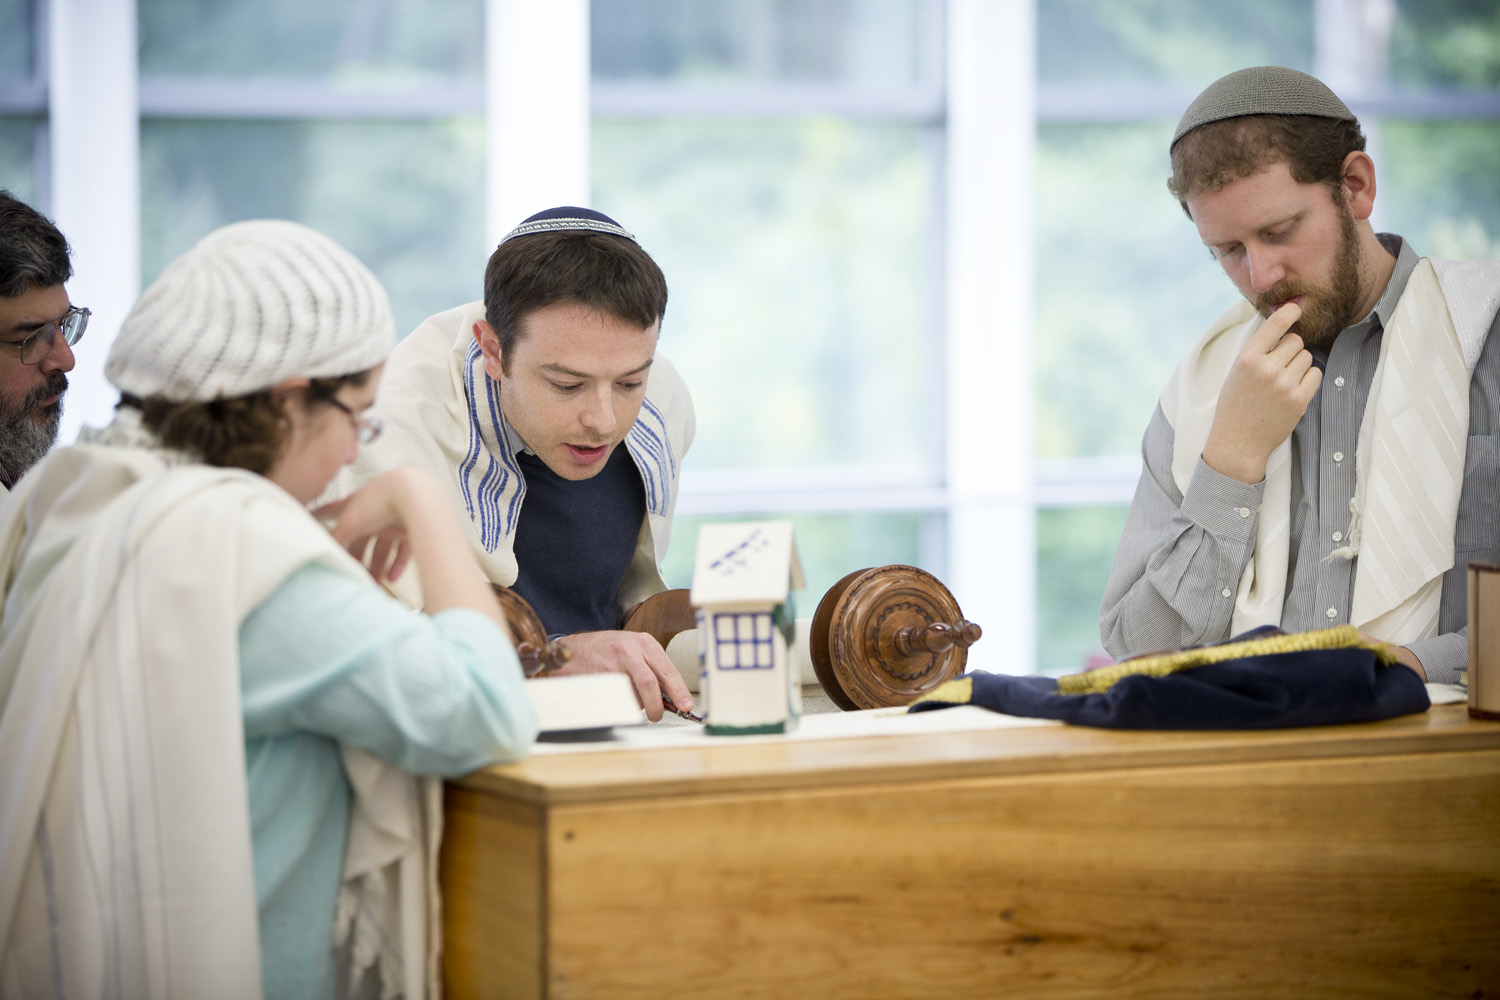 Four Rabbinical students leaning in, looking over a torah scroll.